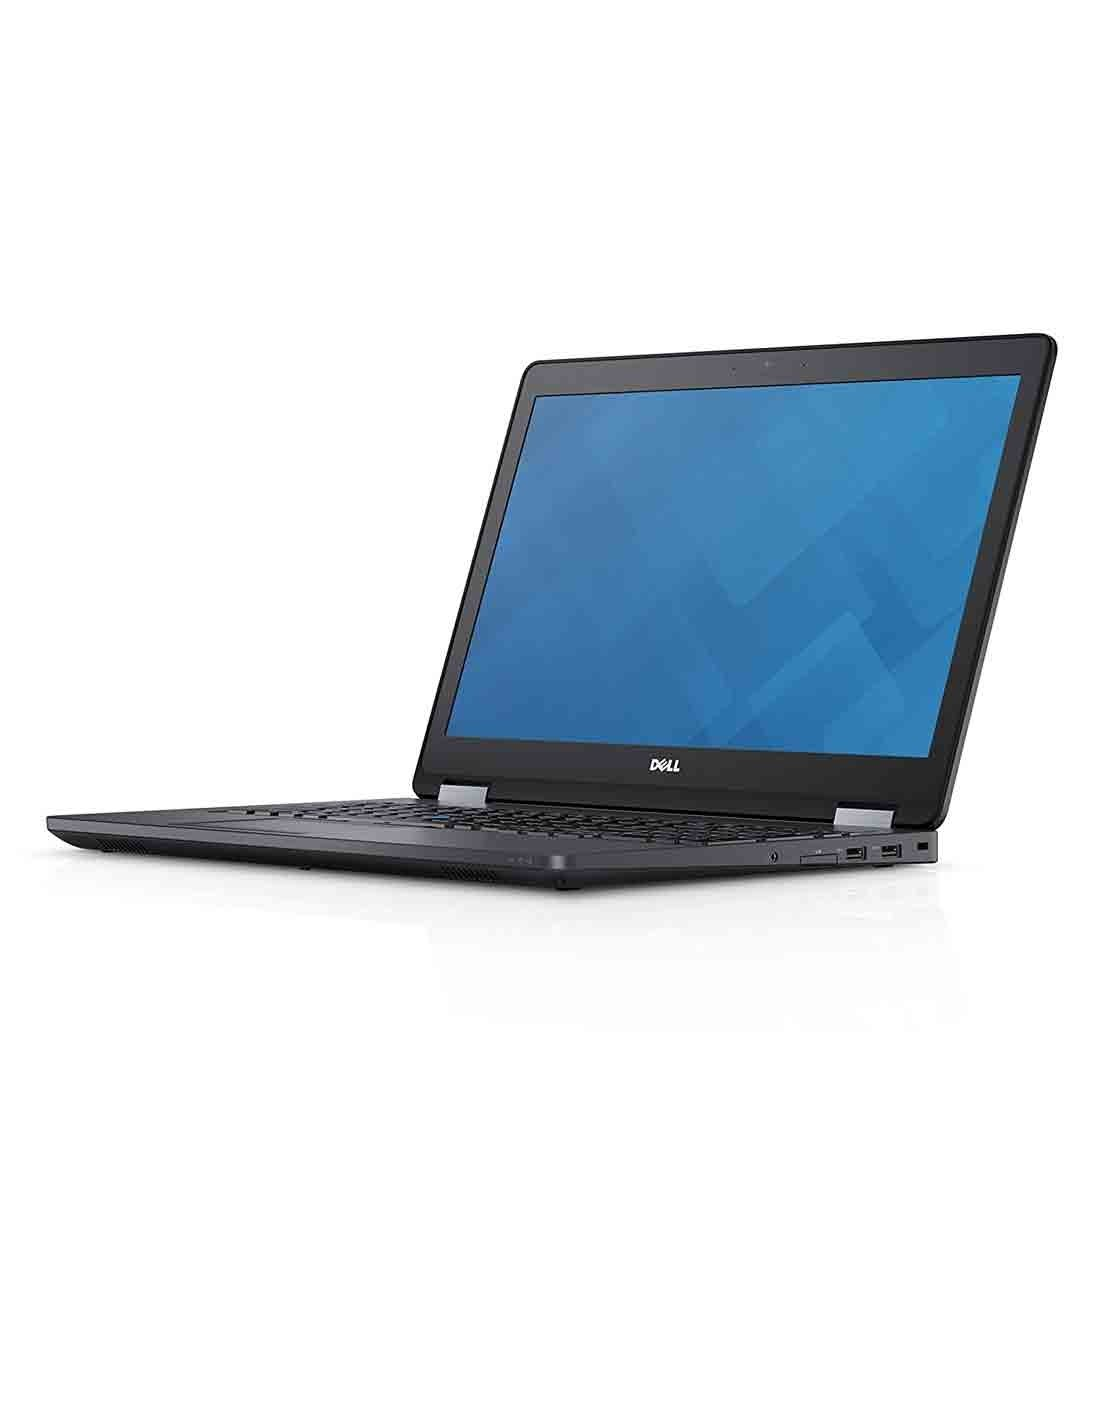 Dell Latitude E5570 Core i7 Business Laptop at an Affordable Price